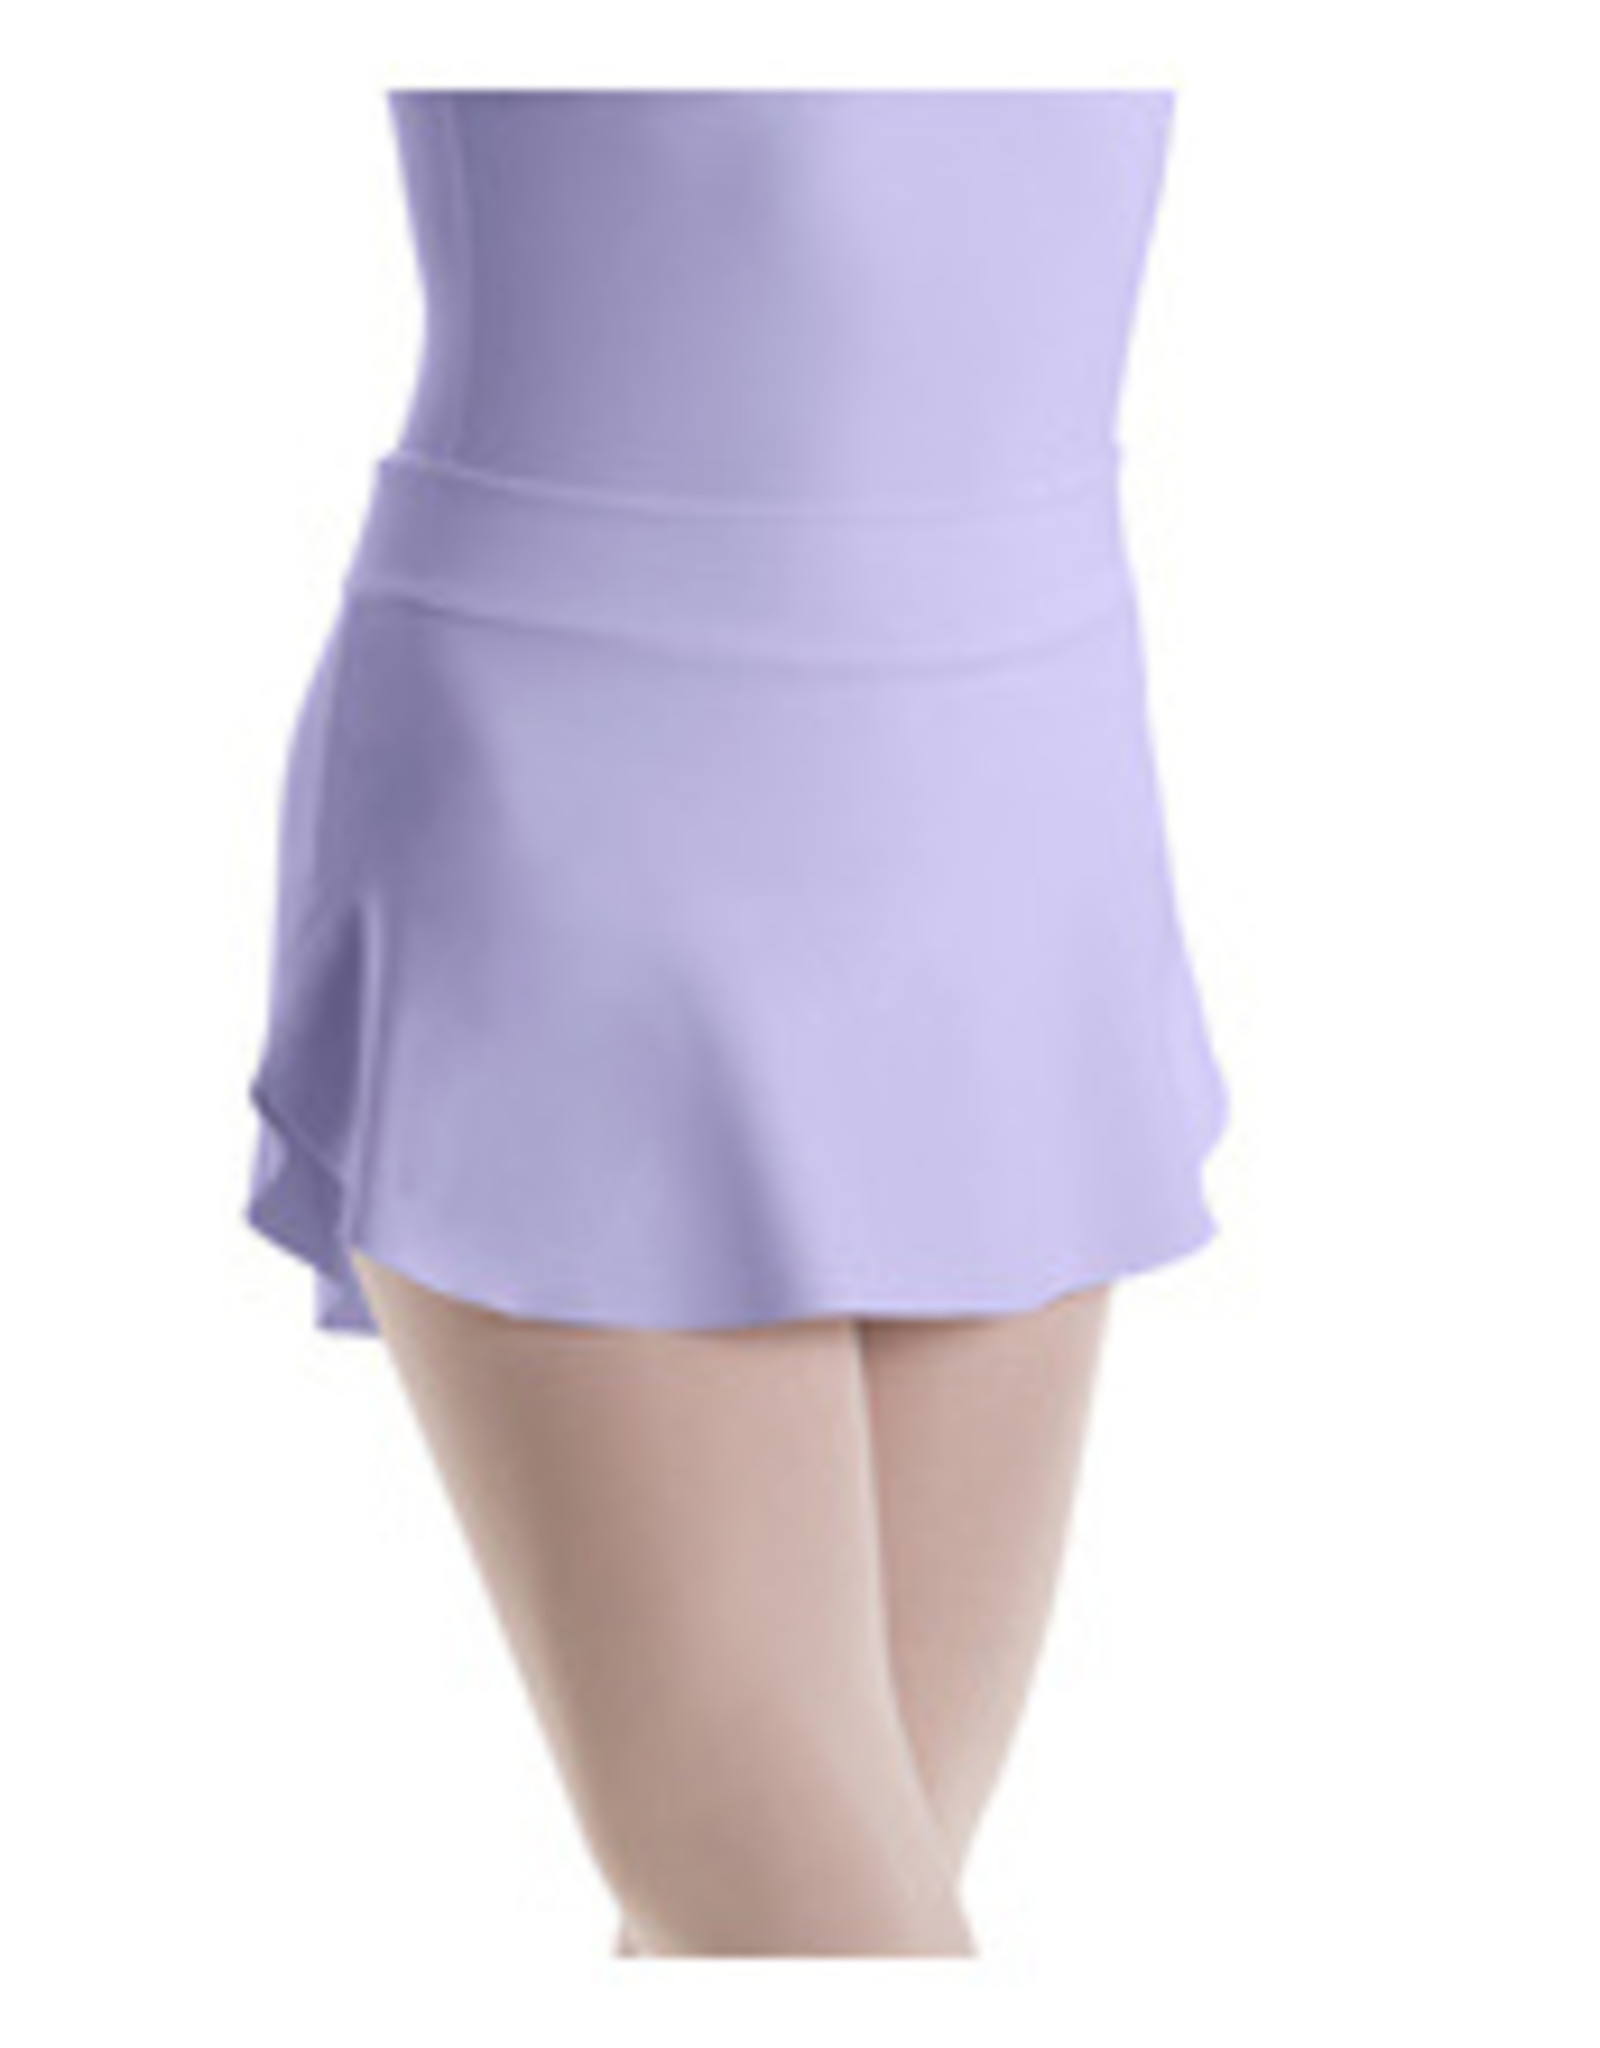 Motionwear Adult Pull-On Skirt #1236